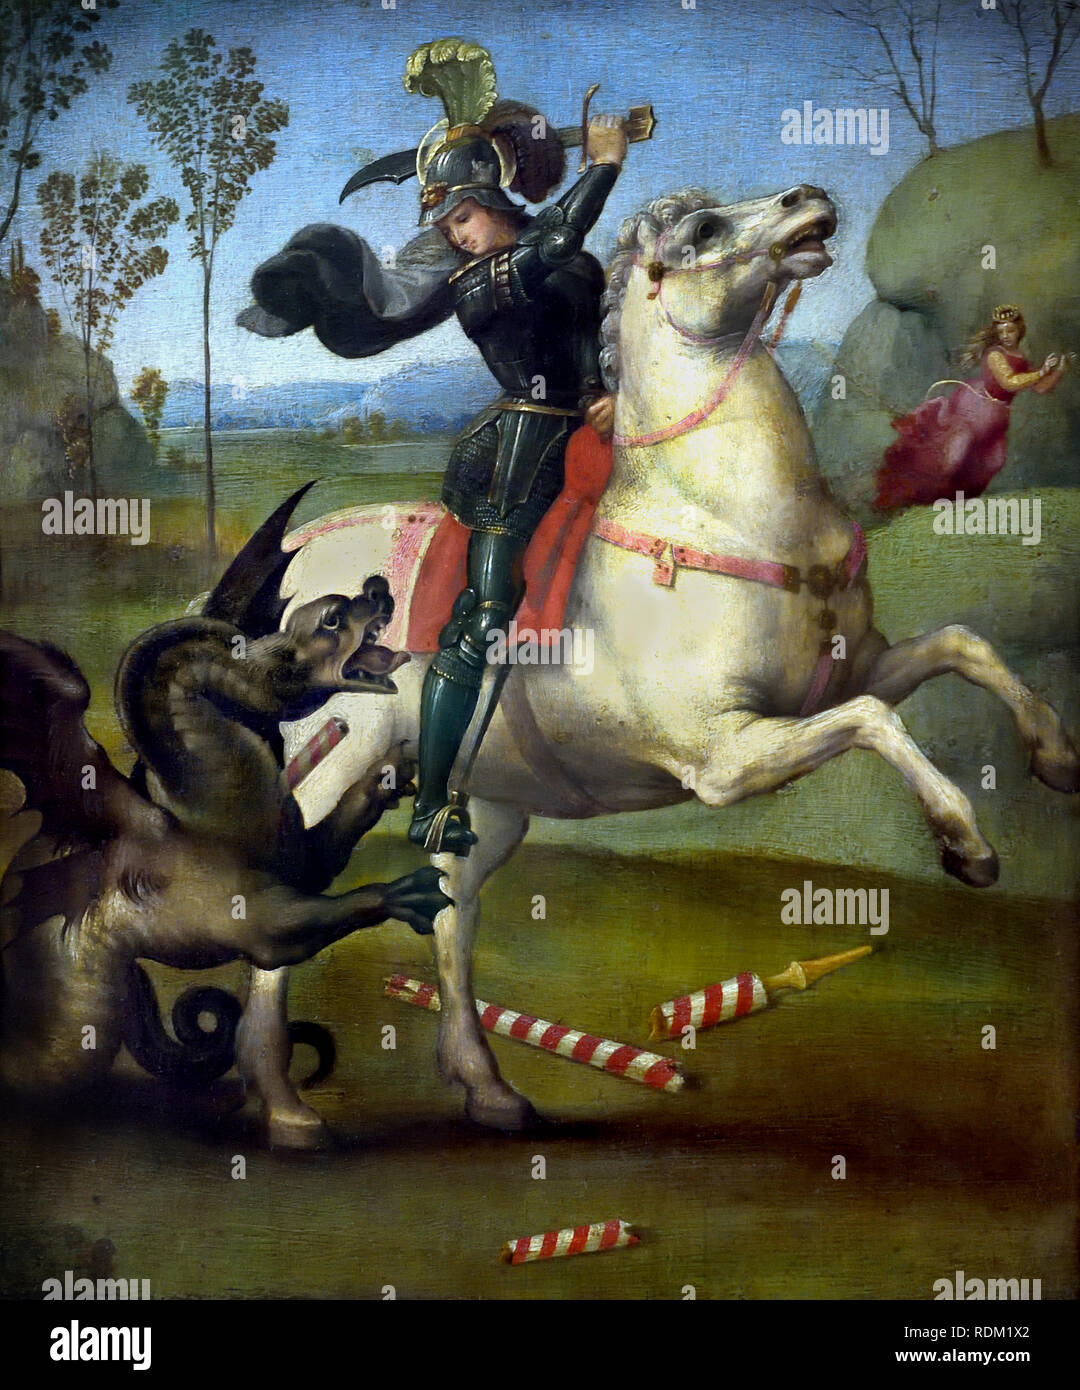 St. George or St. George and the Dragon  by Raphael - Raffaello Sanzio da Urbino 1483 –1520 was an Italian painter and architect of the High Renaissance Italy - Stock Image